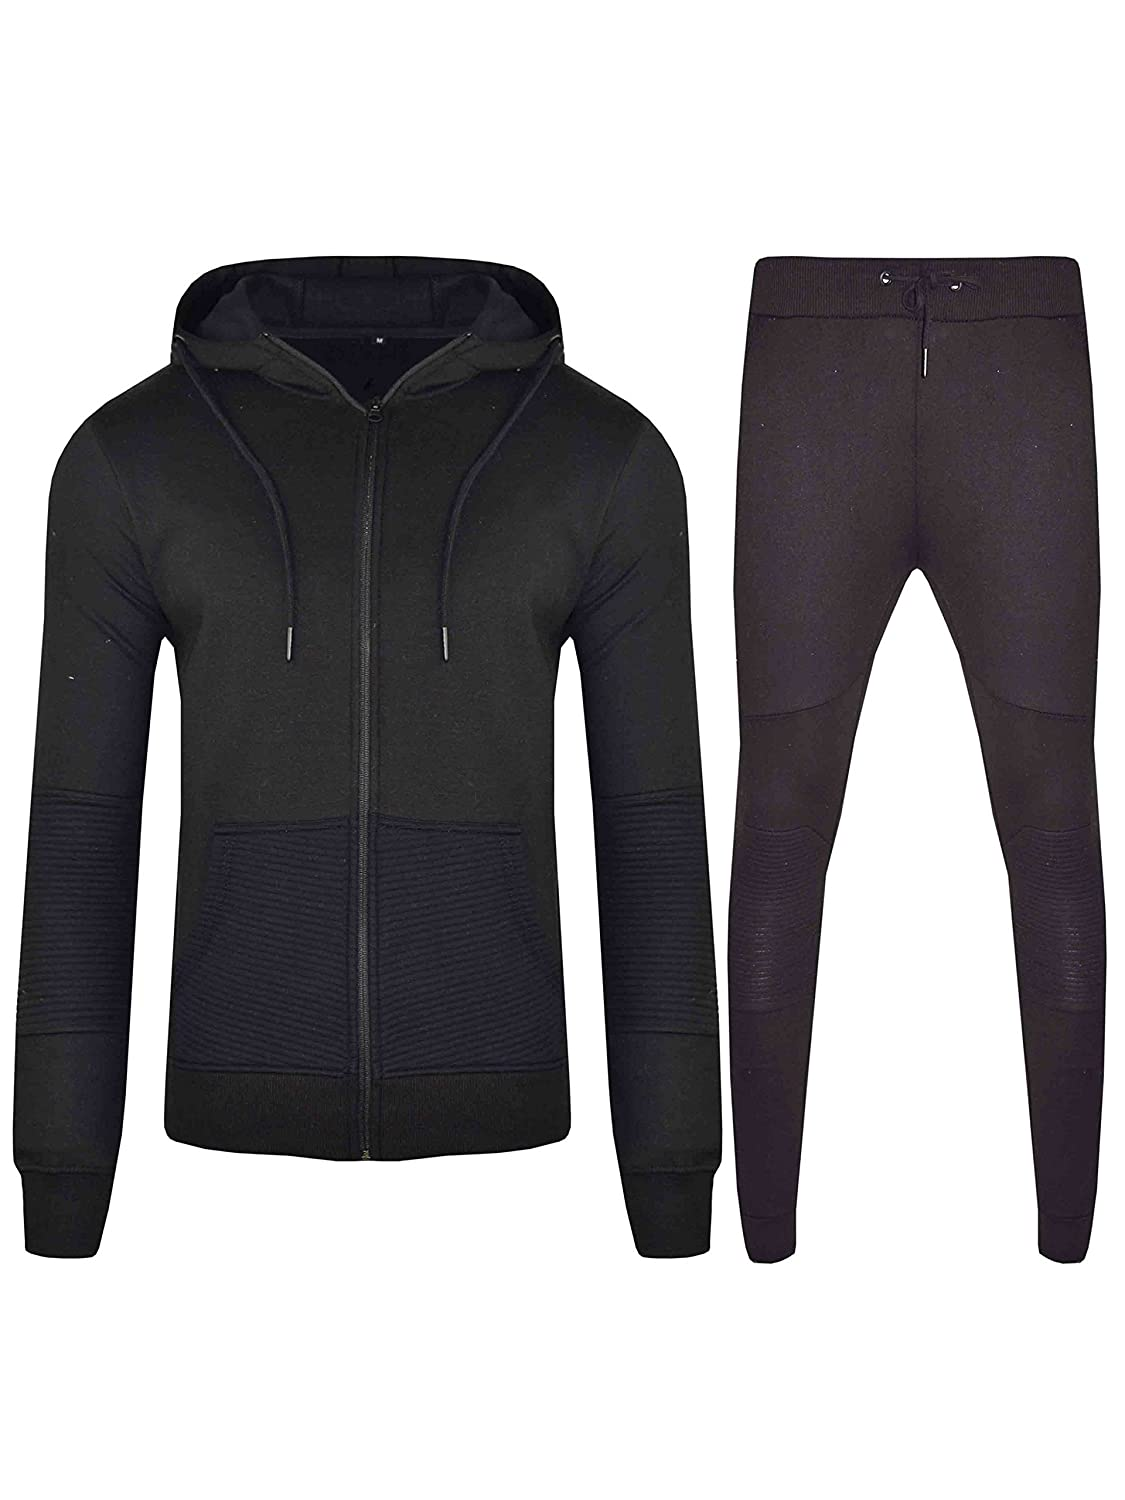 013599c7df1 Men Tracksuit Set Fleece Hoodie Bottom Jogger Kids Contrast Cord Gym Active  wear at Amazon Men s Clothing store